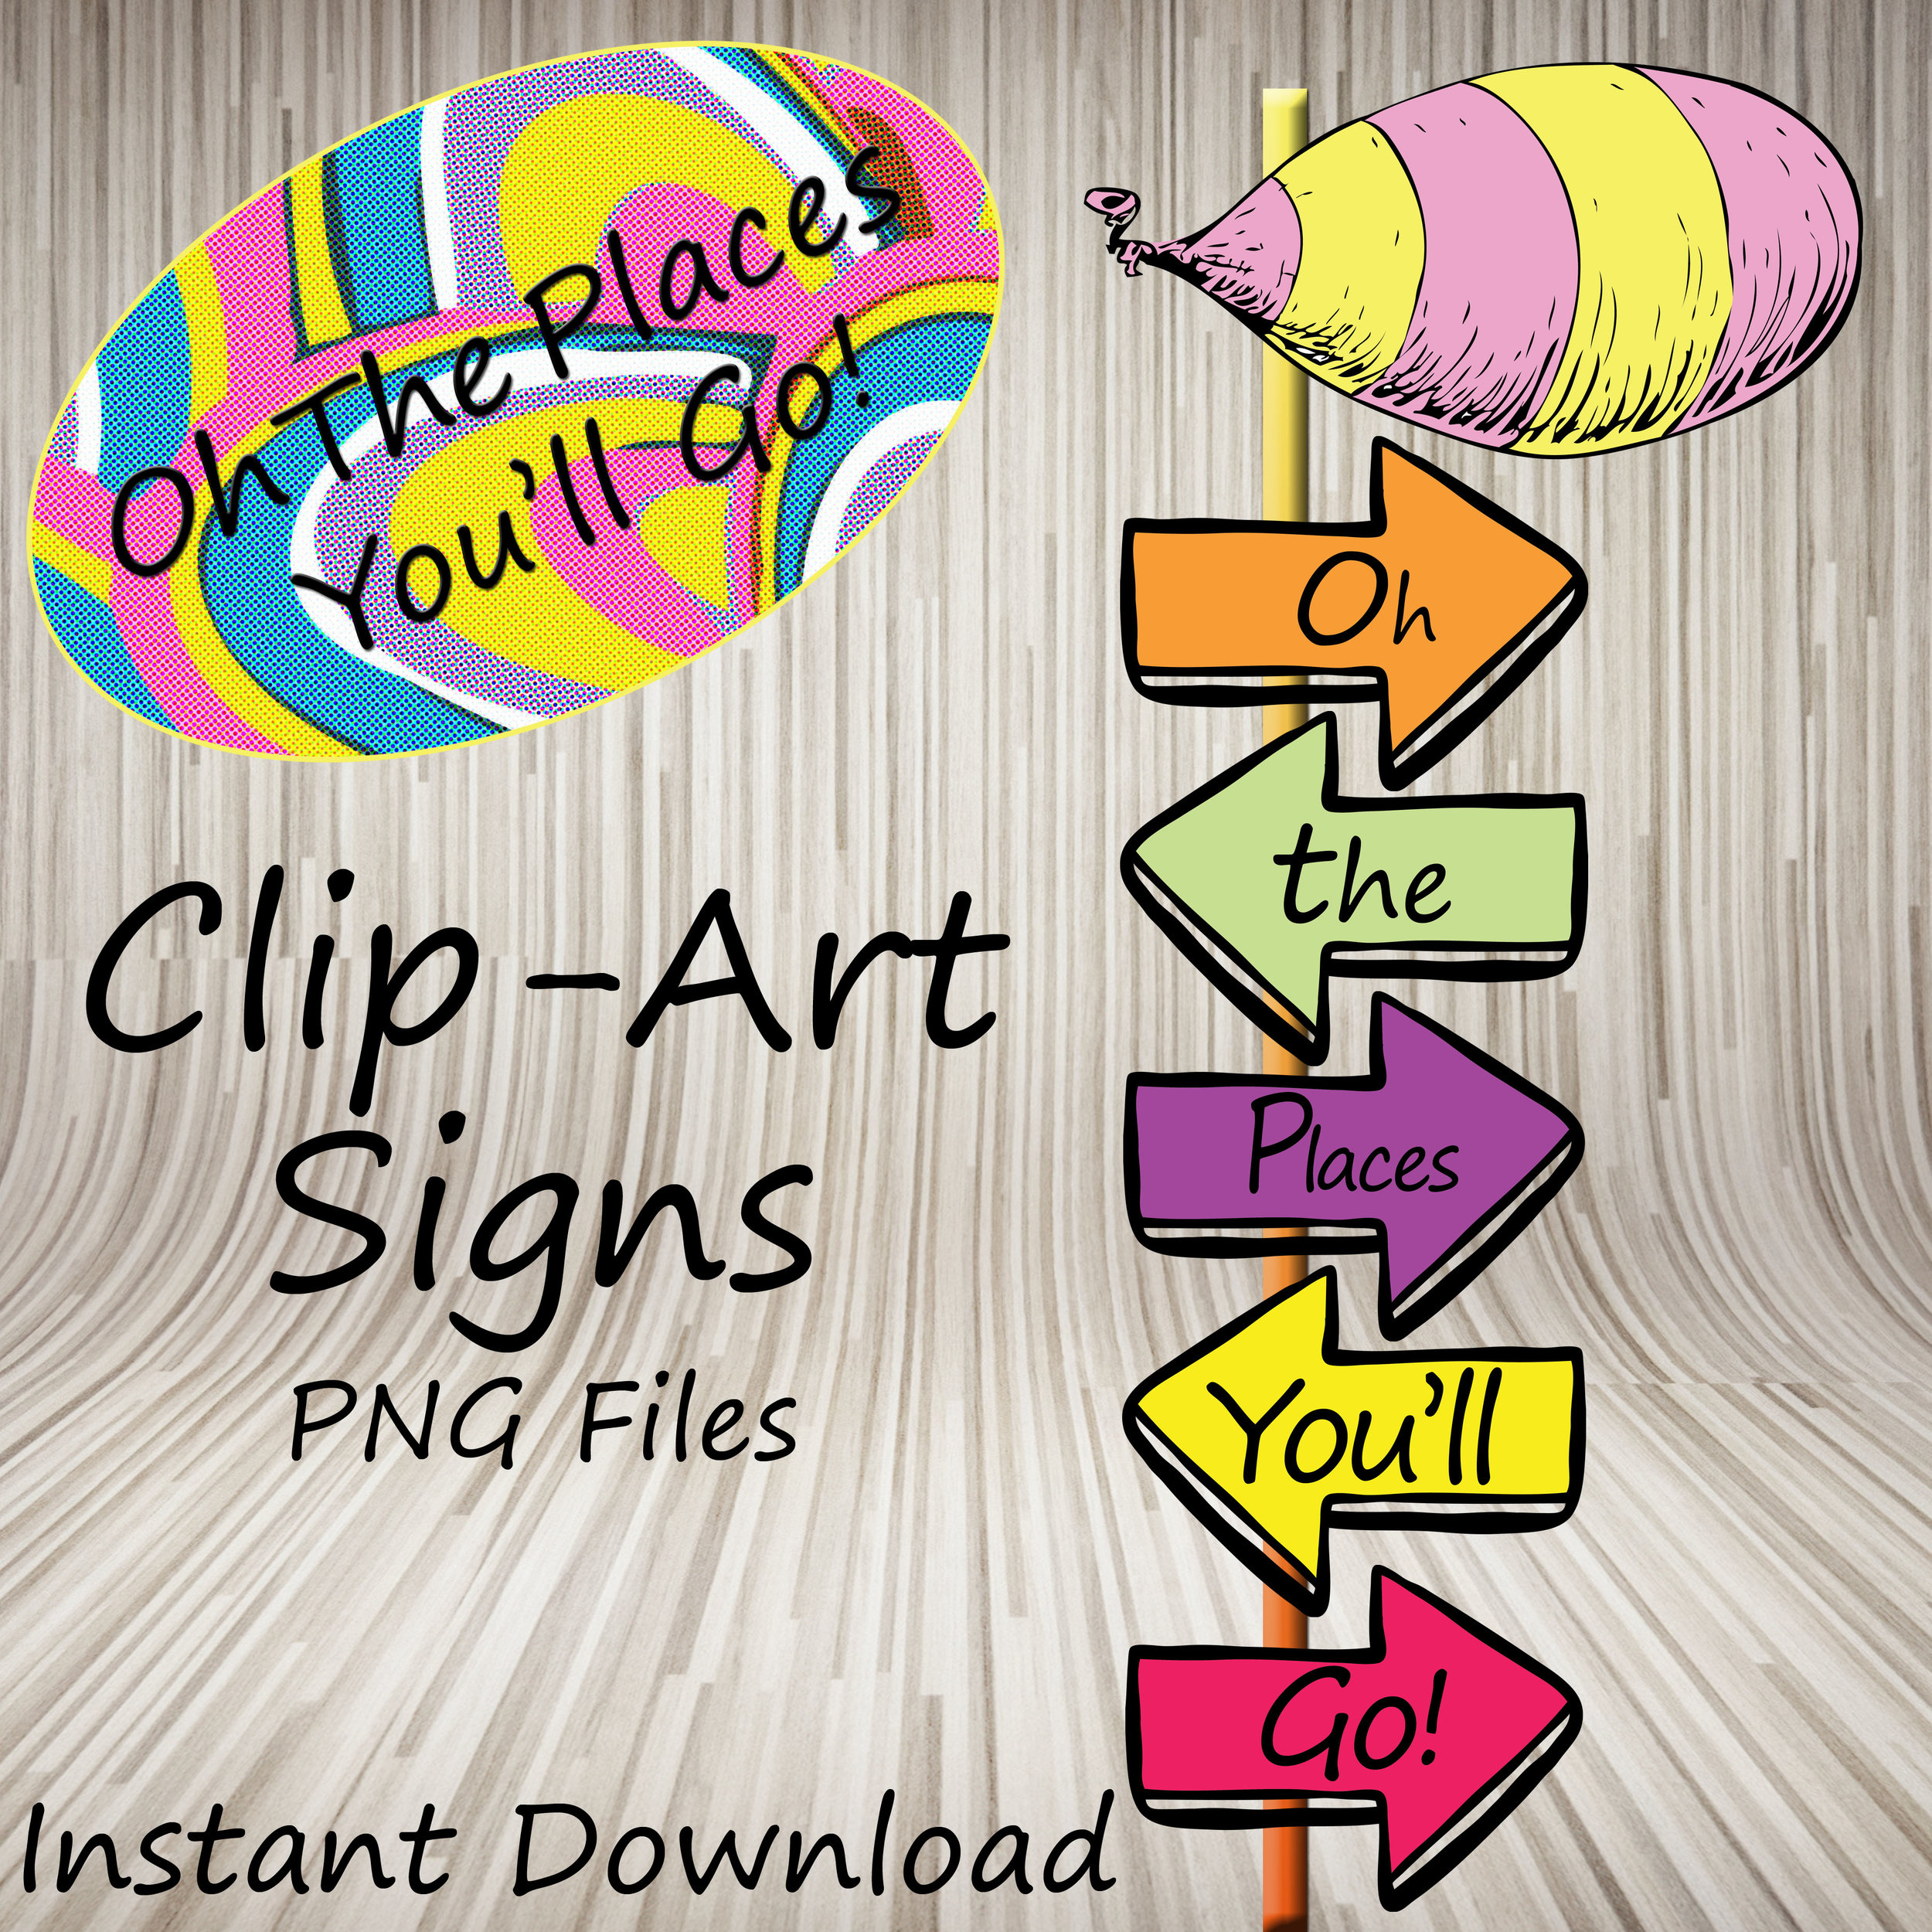 graphic about Oh the Places You'll Go Printable named Oh The Areas Youll Move Arrow Indicators A Buddy Layout LLC. Impression DesignPrintable Events Even more Electronic On the web Keep